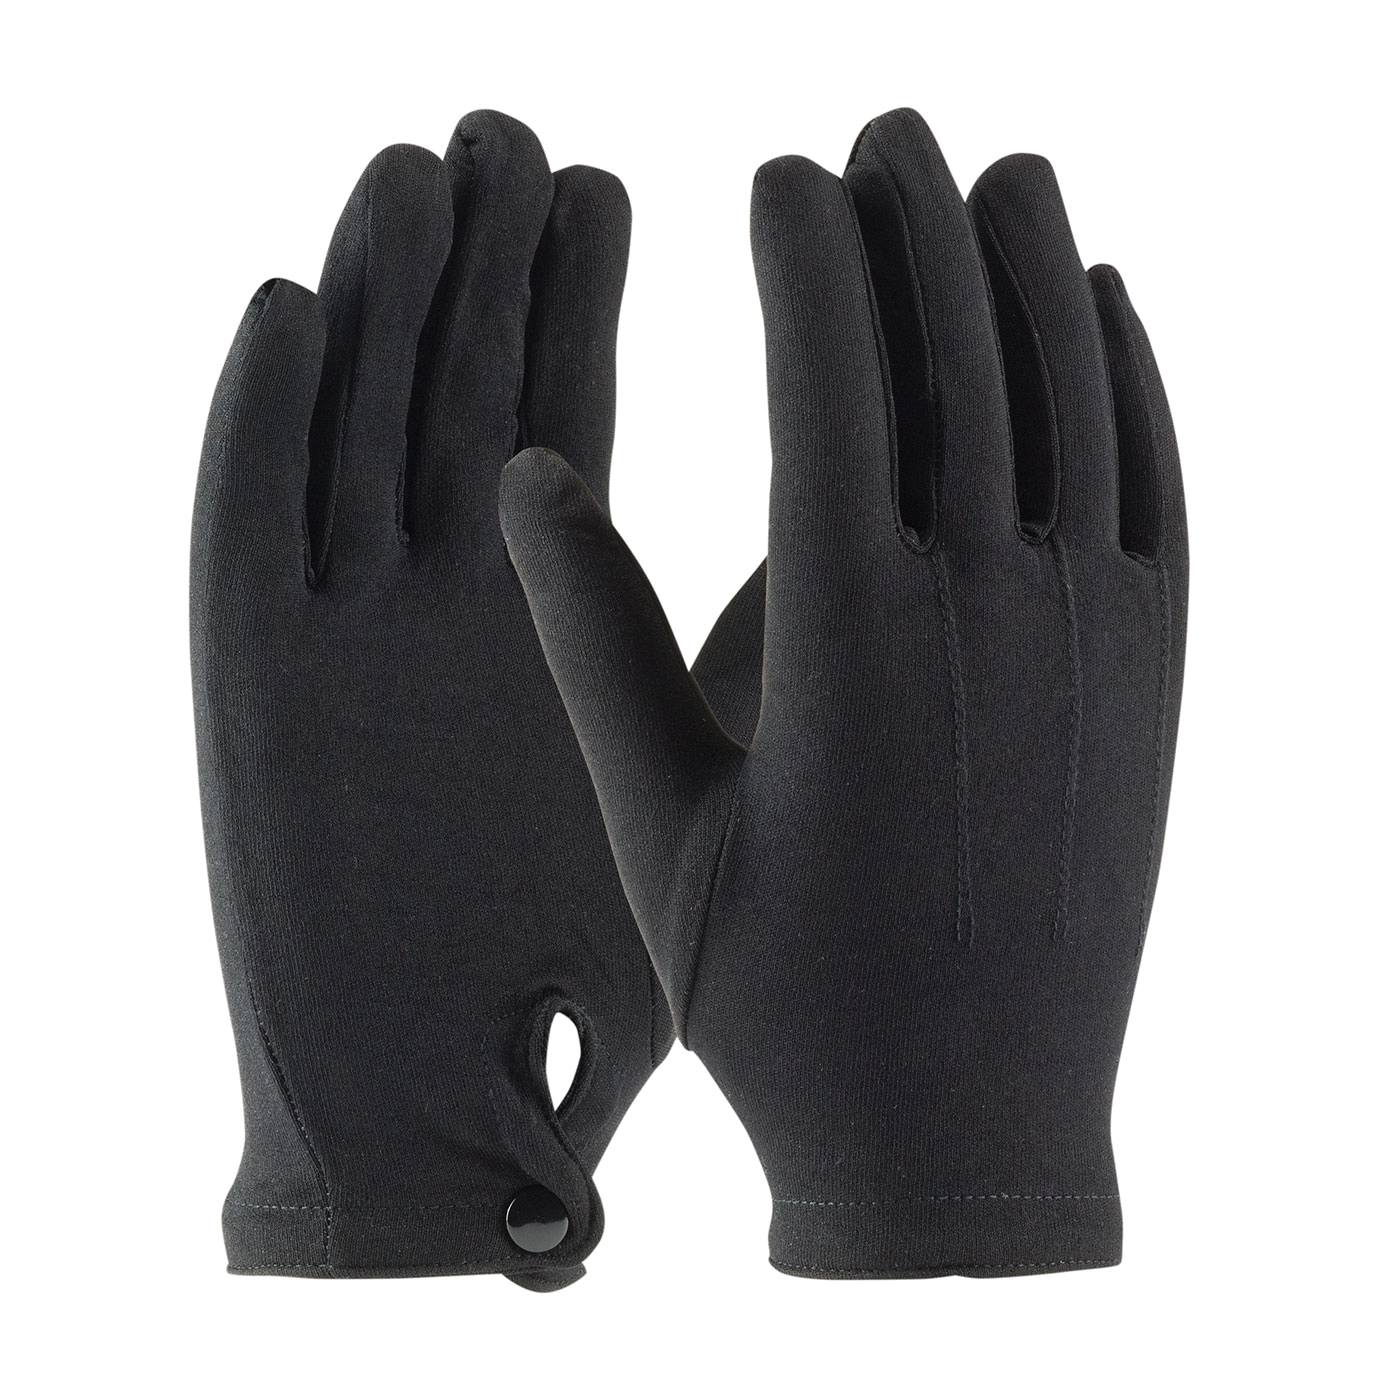 PIP® Cabaret™ 130-650BM Cabaret™ Men's Dress Gloves With Raised Stitching on Back, Nylon, Black, Unlined Lining, 24.7 in L, Resists: Abrasion and Cut